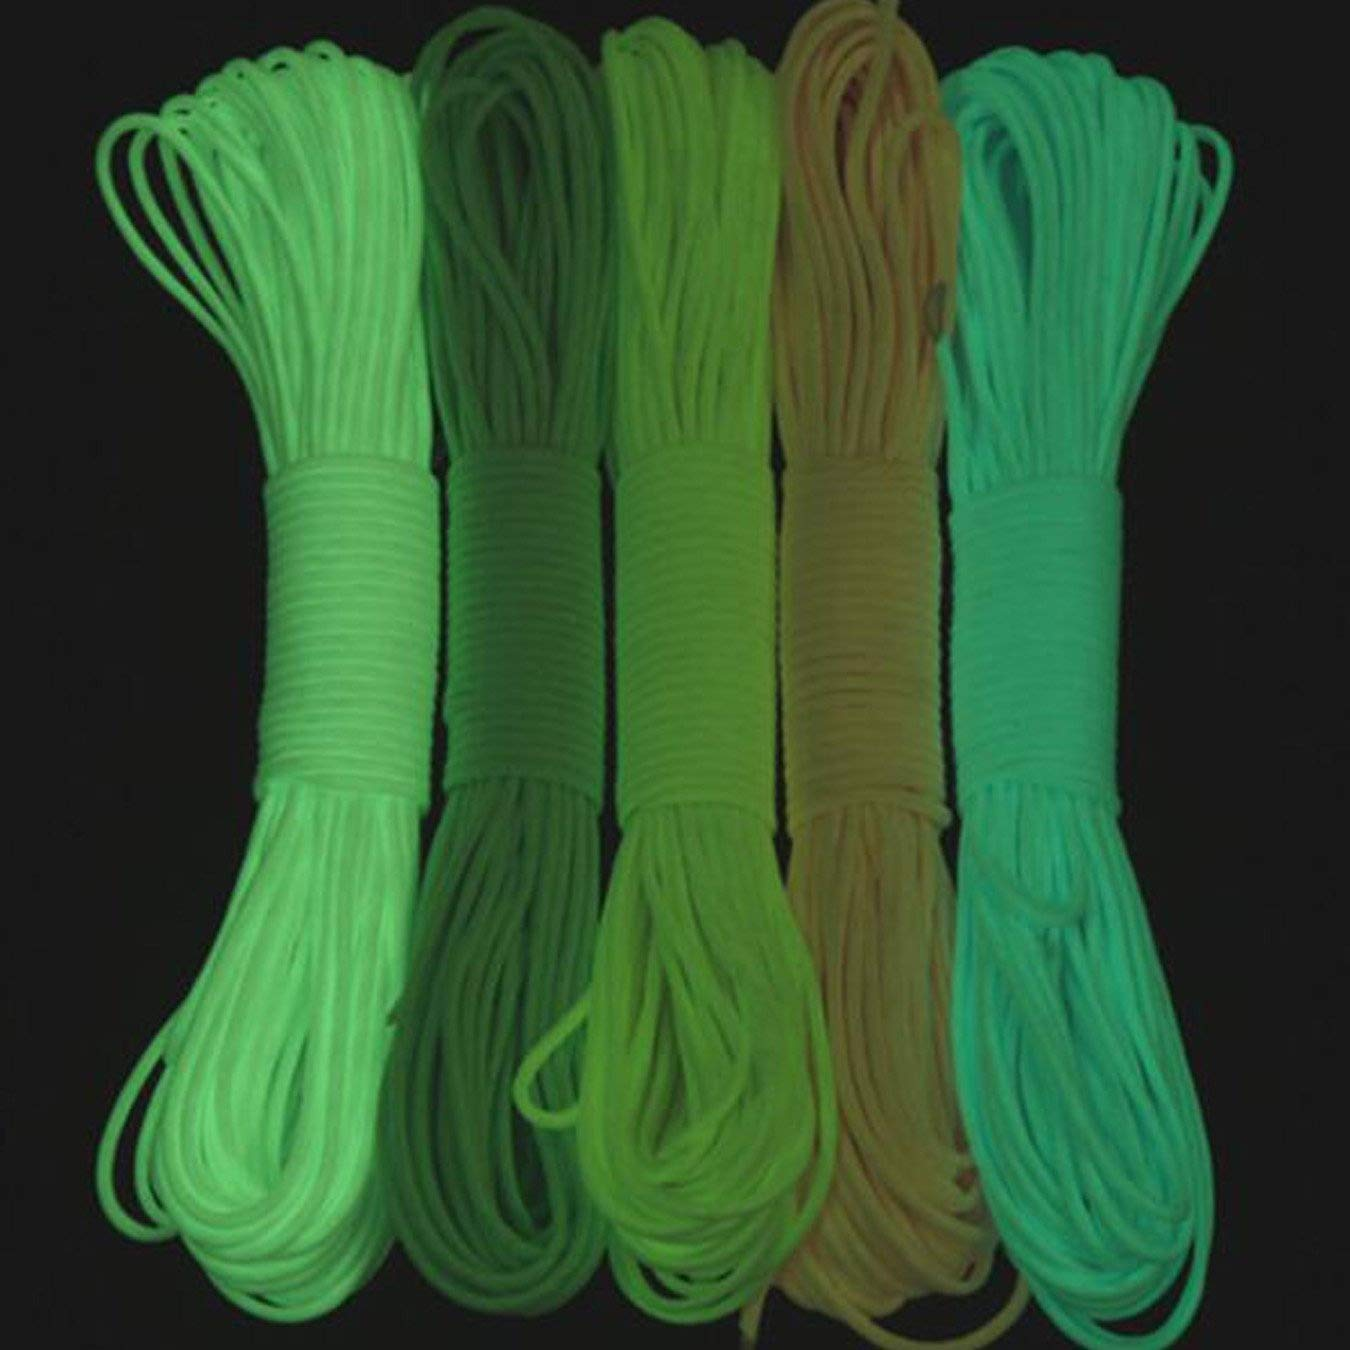 Perfect for DIY Bracelet Craft County Glow in The Dark Zesty 21 Strand Luminous 550 Paracord Variety of Vibrant Colors Available 25ft Lanyard 50ft 100ft DIY Crafts Choose from 10ft